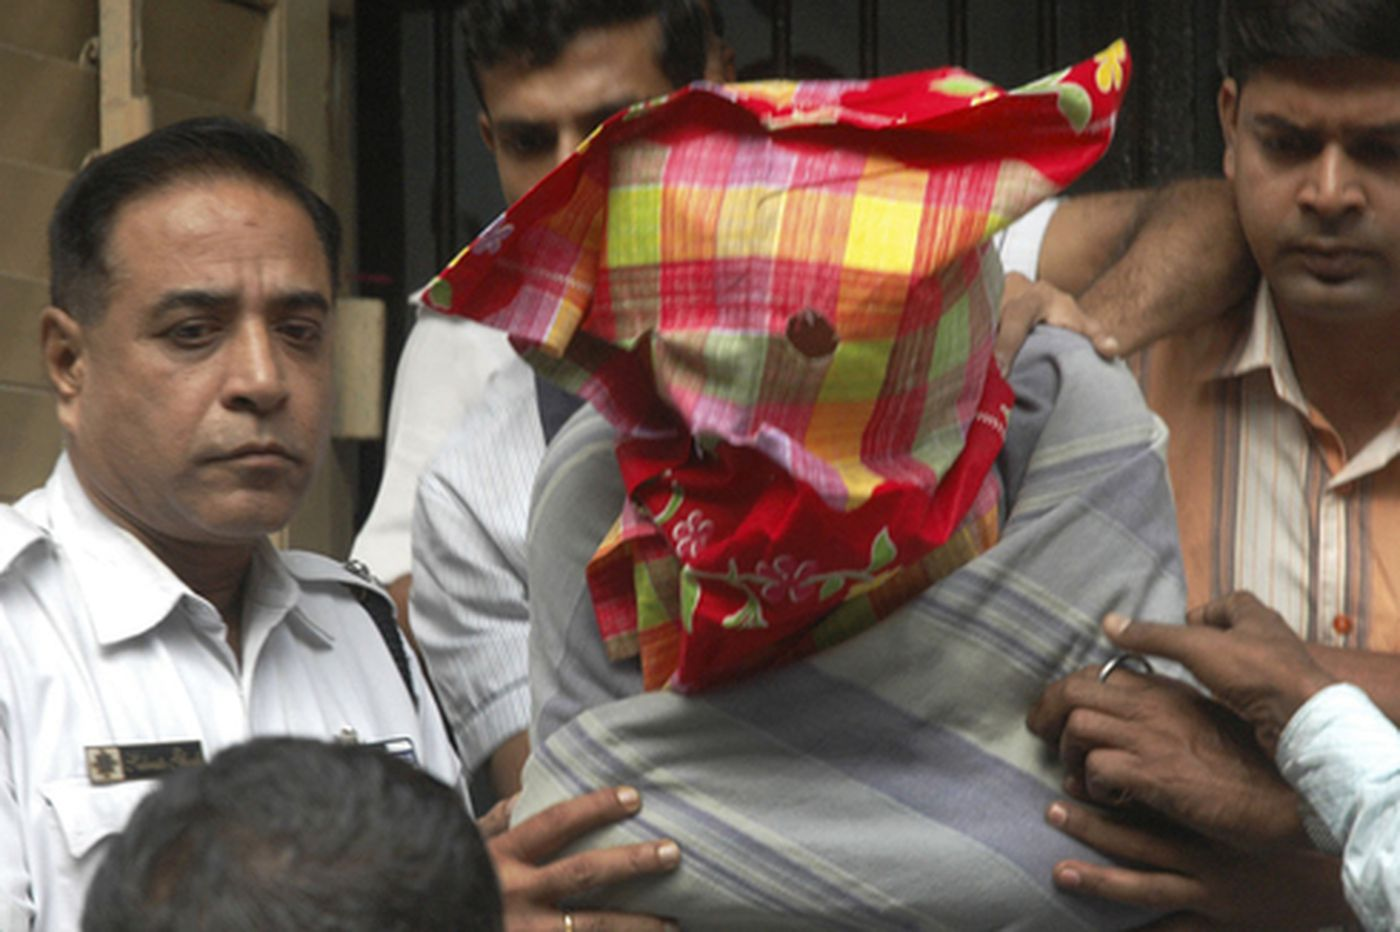 Man said to help Mumbai gunmen may have been police